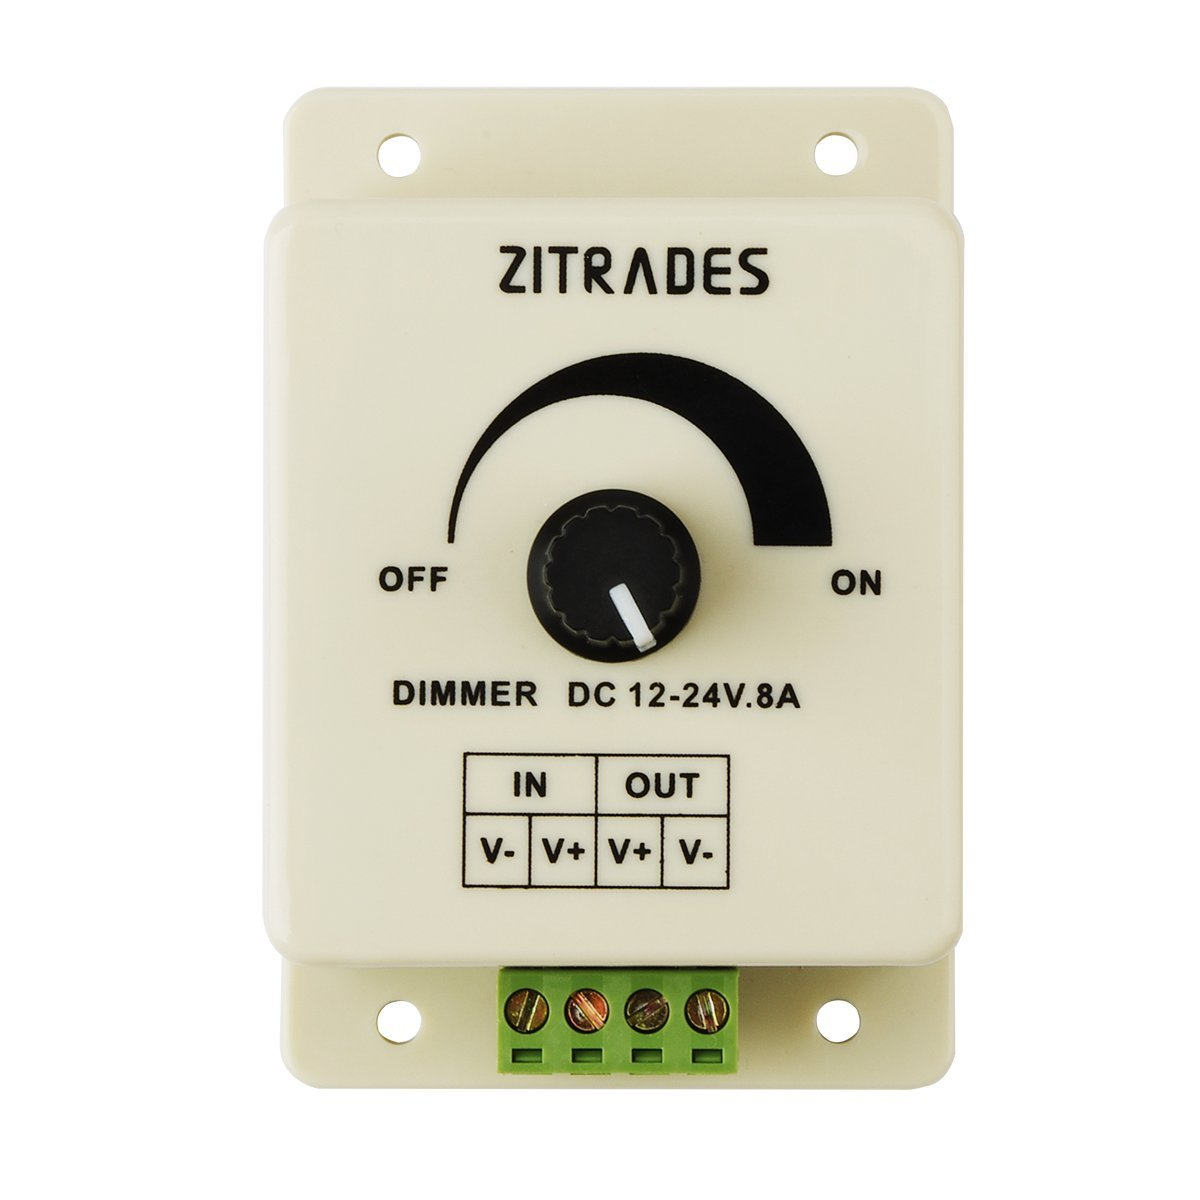 Cheap Dimming 12v Led Lights Find Deals On New 8a Light Lighting Brightness Control Dimmer Knob Get Quotations Pwm Controller For Or Ribbon 12 Volt 8 Ampadjustable